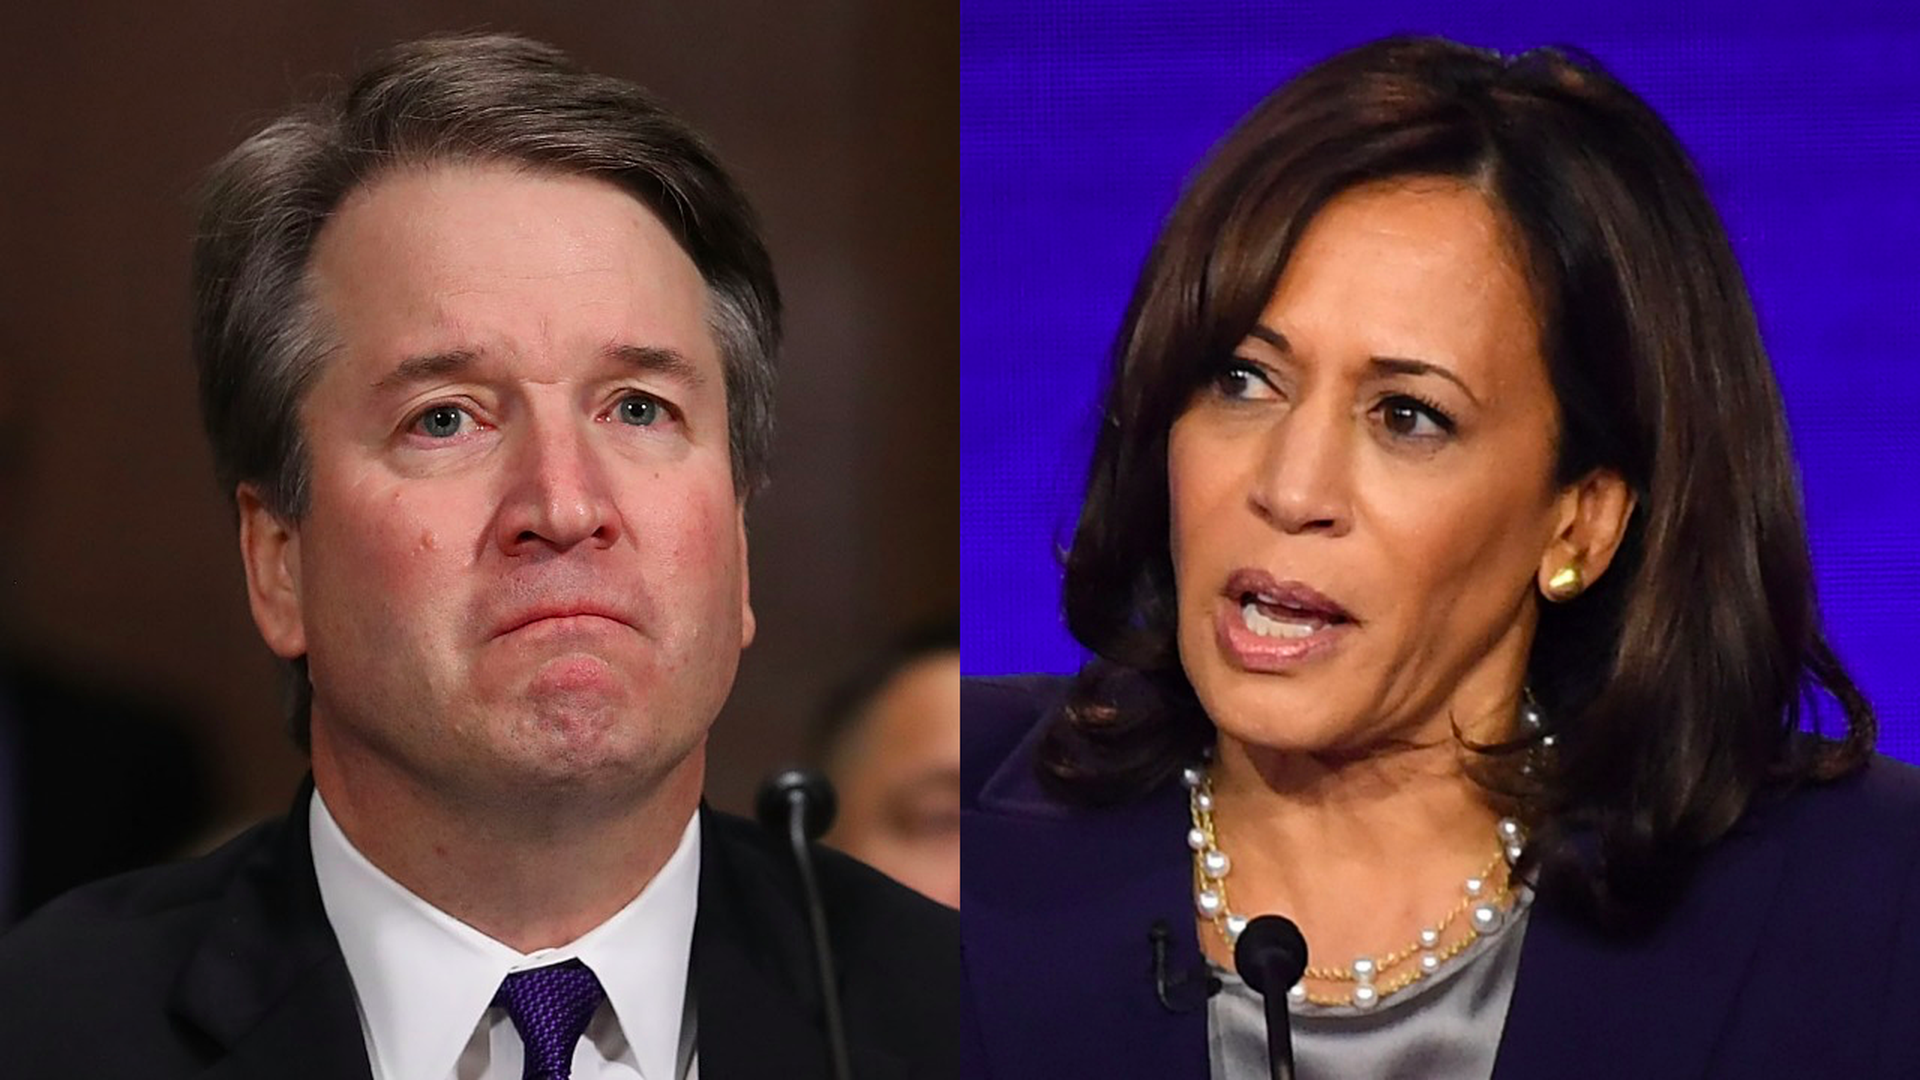 Brett Kavanaugh and Kamala Harris